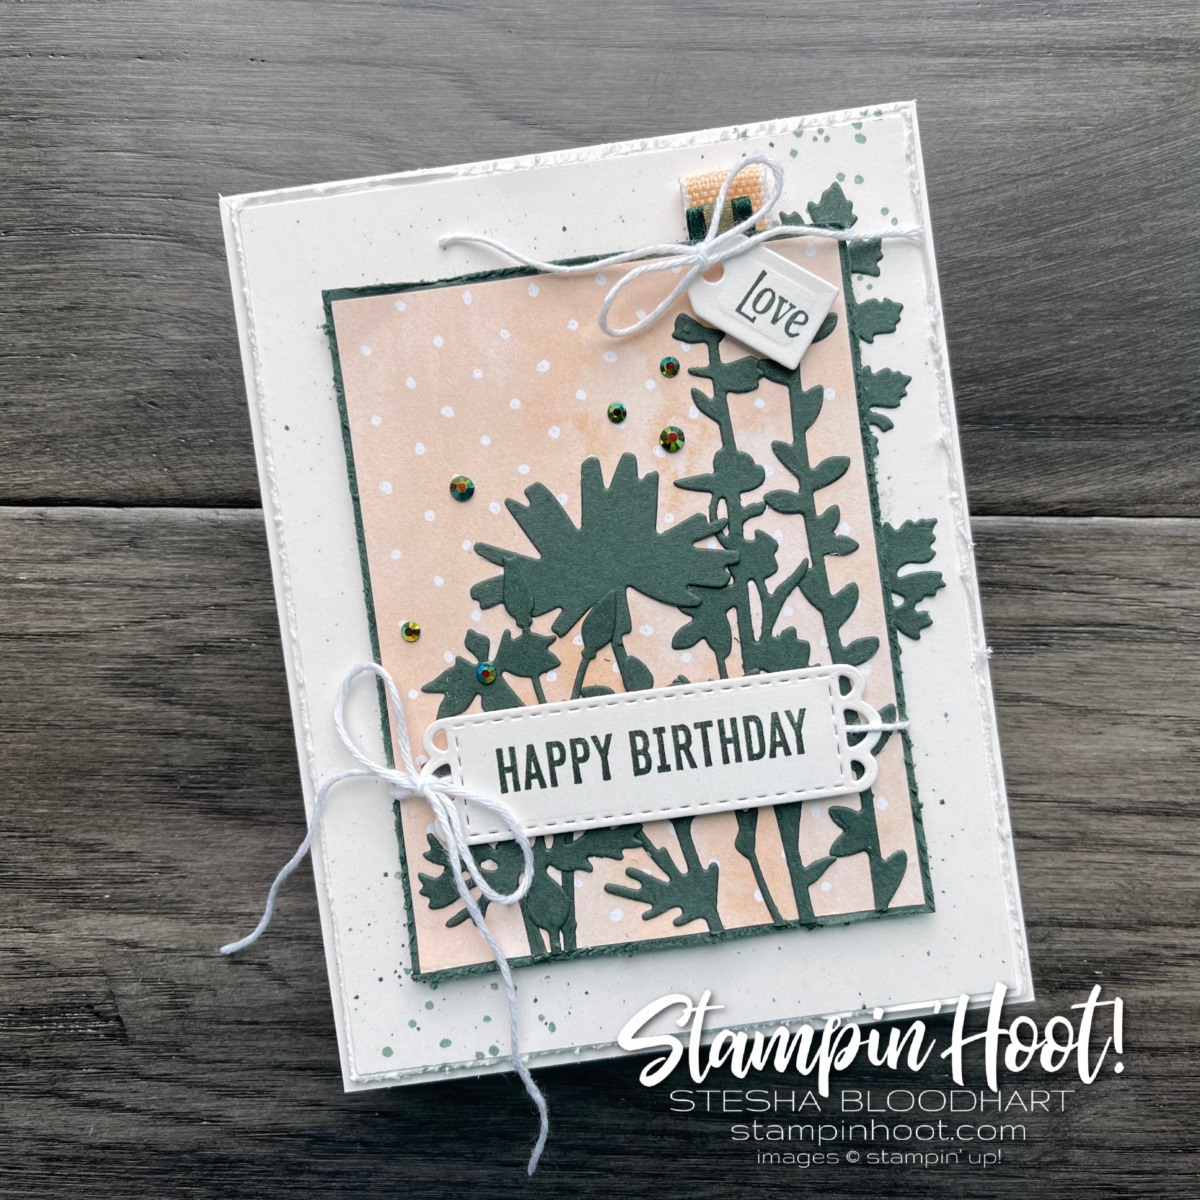 Quiet Meadow Bundle and Hand-Penned by Stampin' Up! Sneak Peek Birthday Card by Stesha Bloodhart, Stampin' Hoot!